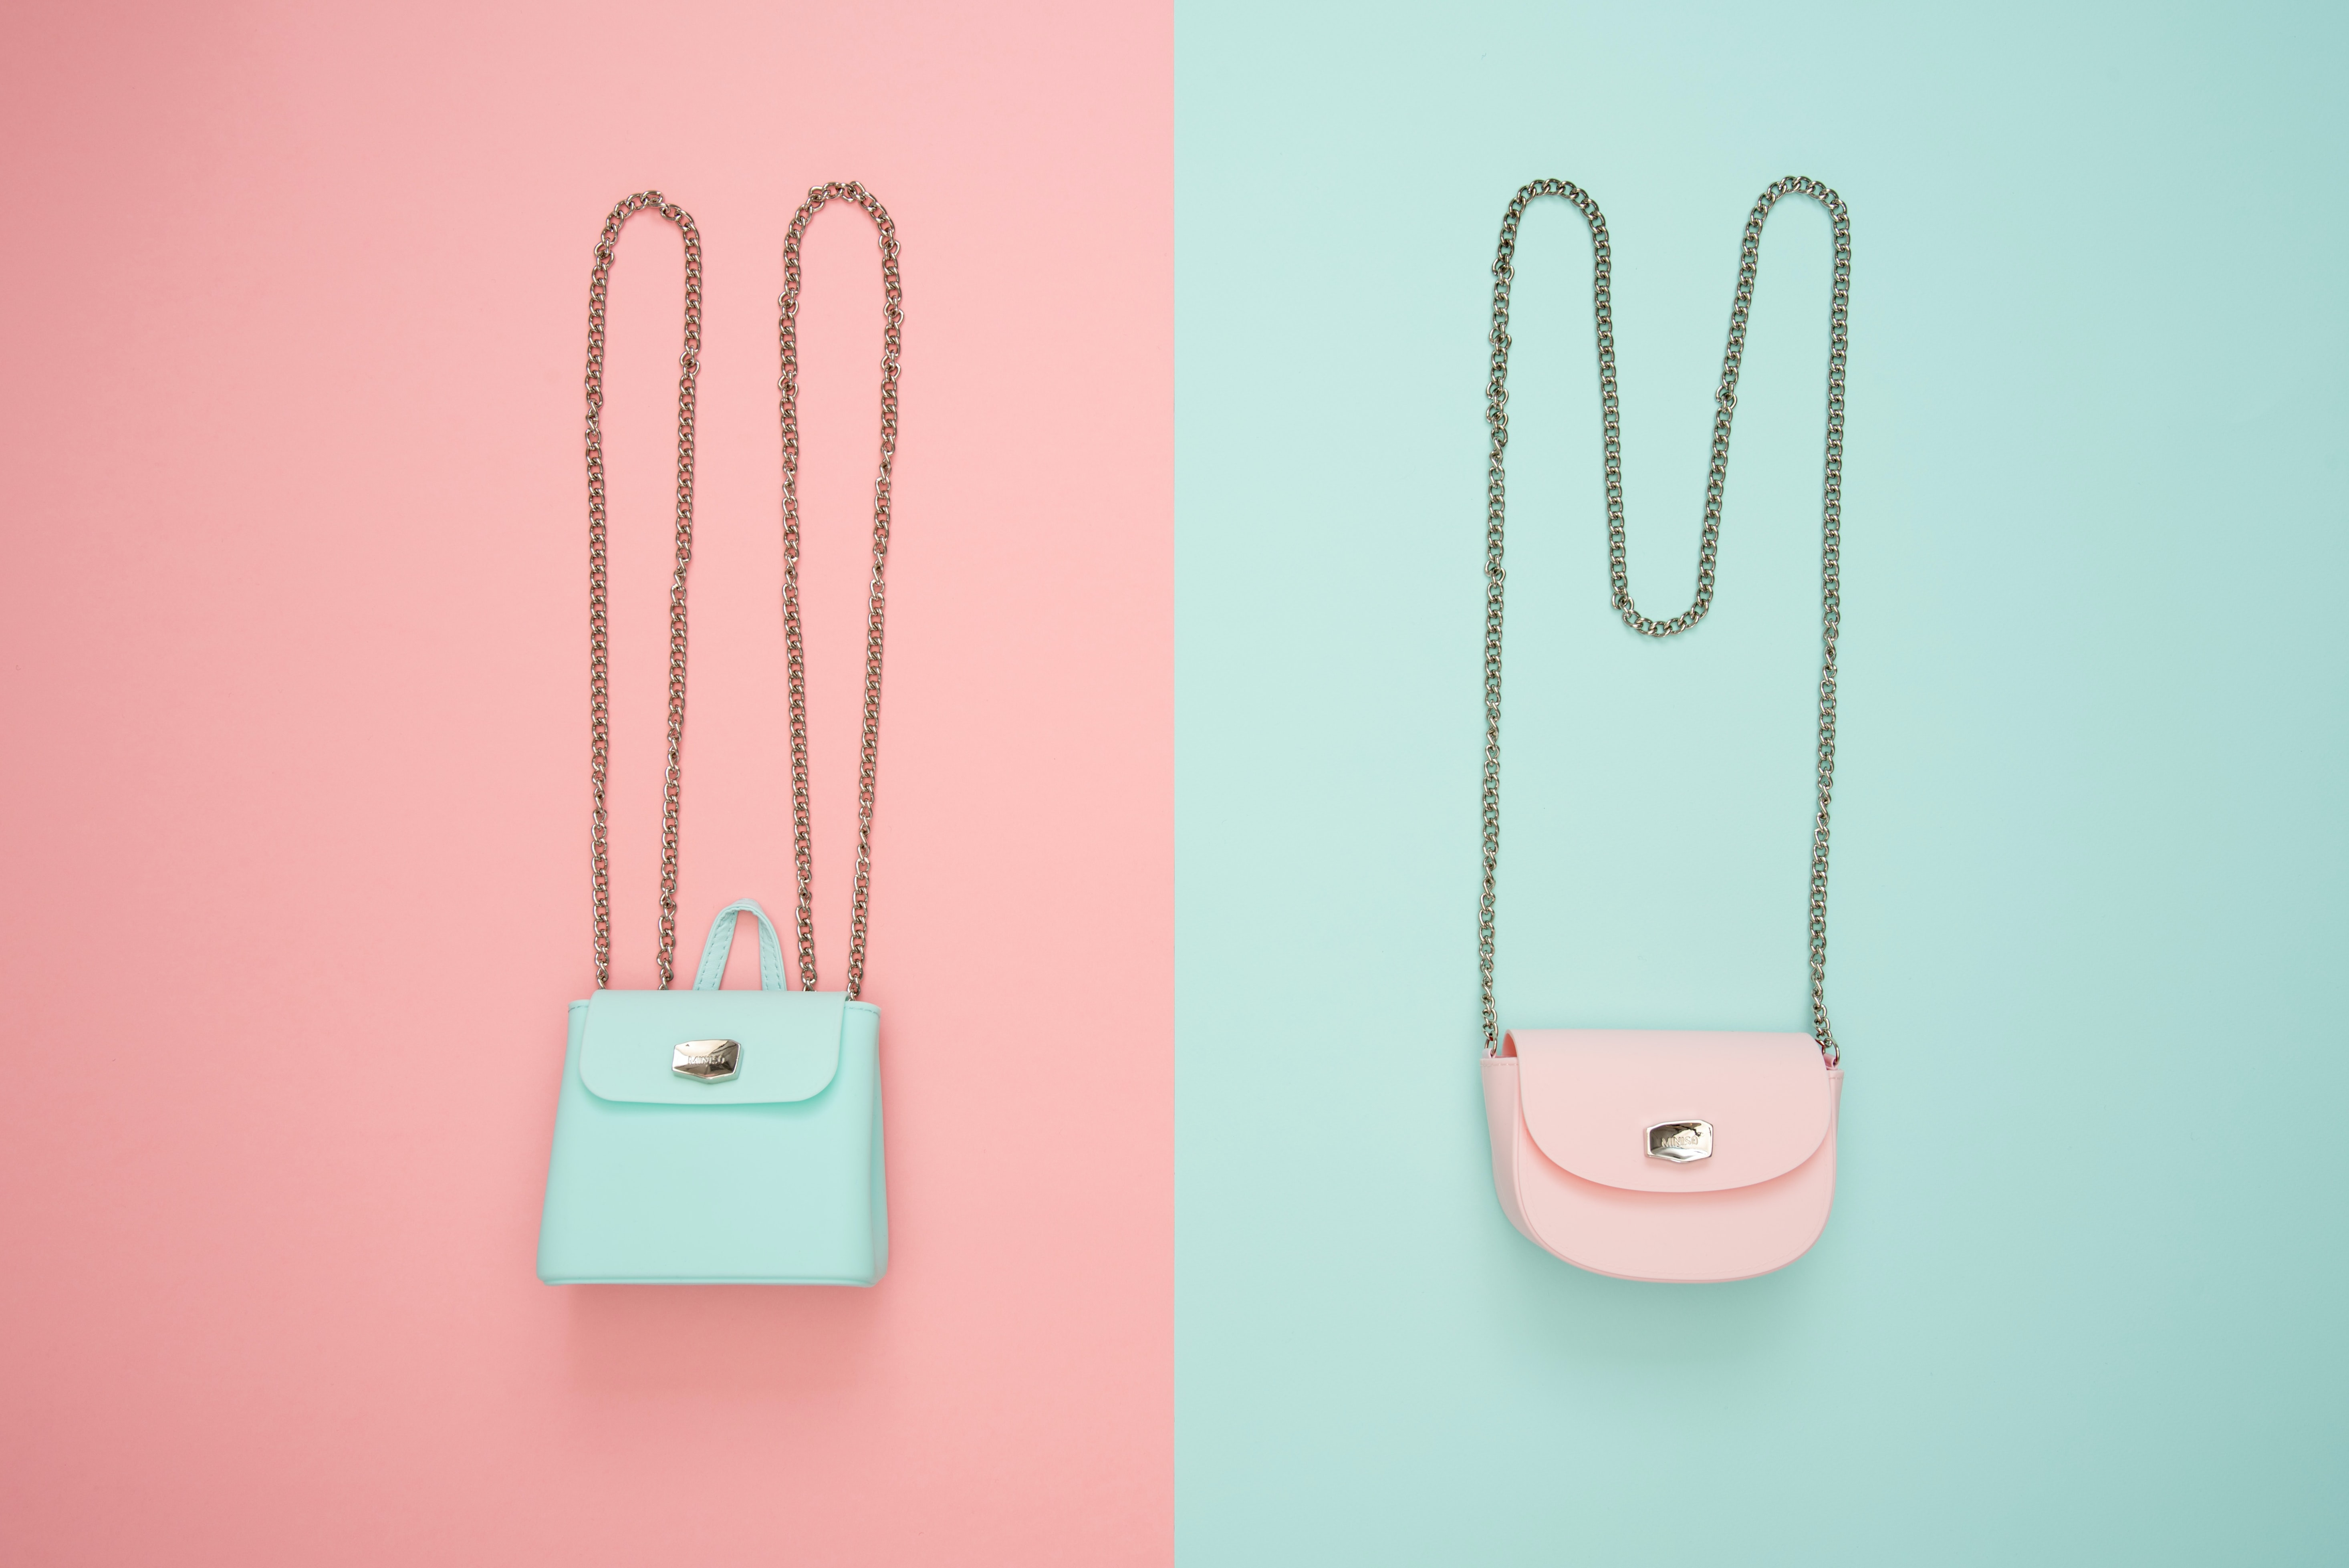 Image of: Phone Photography Of Crossbody Bags Unsplash 1000 Cute Wallpapers download Unsplashs Collection Of The